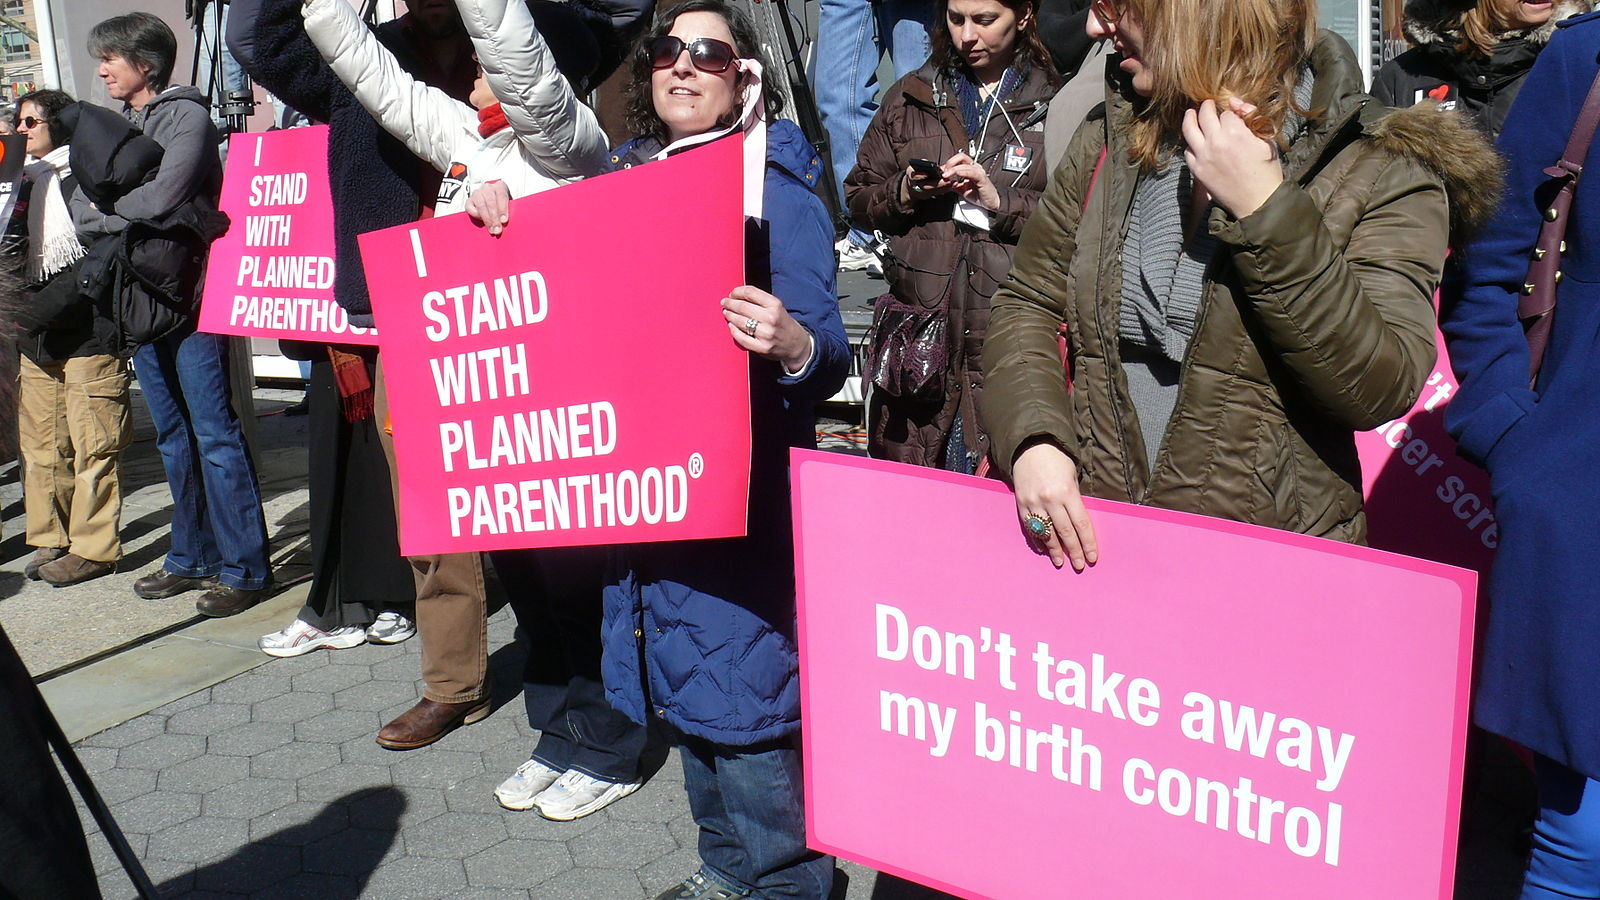 It's okay for Arkansas to block Medicaid funds going to Planned Parenthood, U.S. appeals court rules